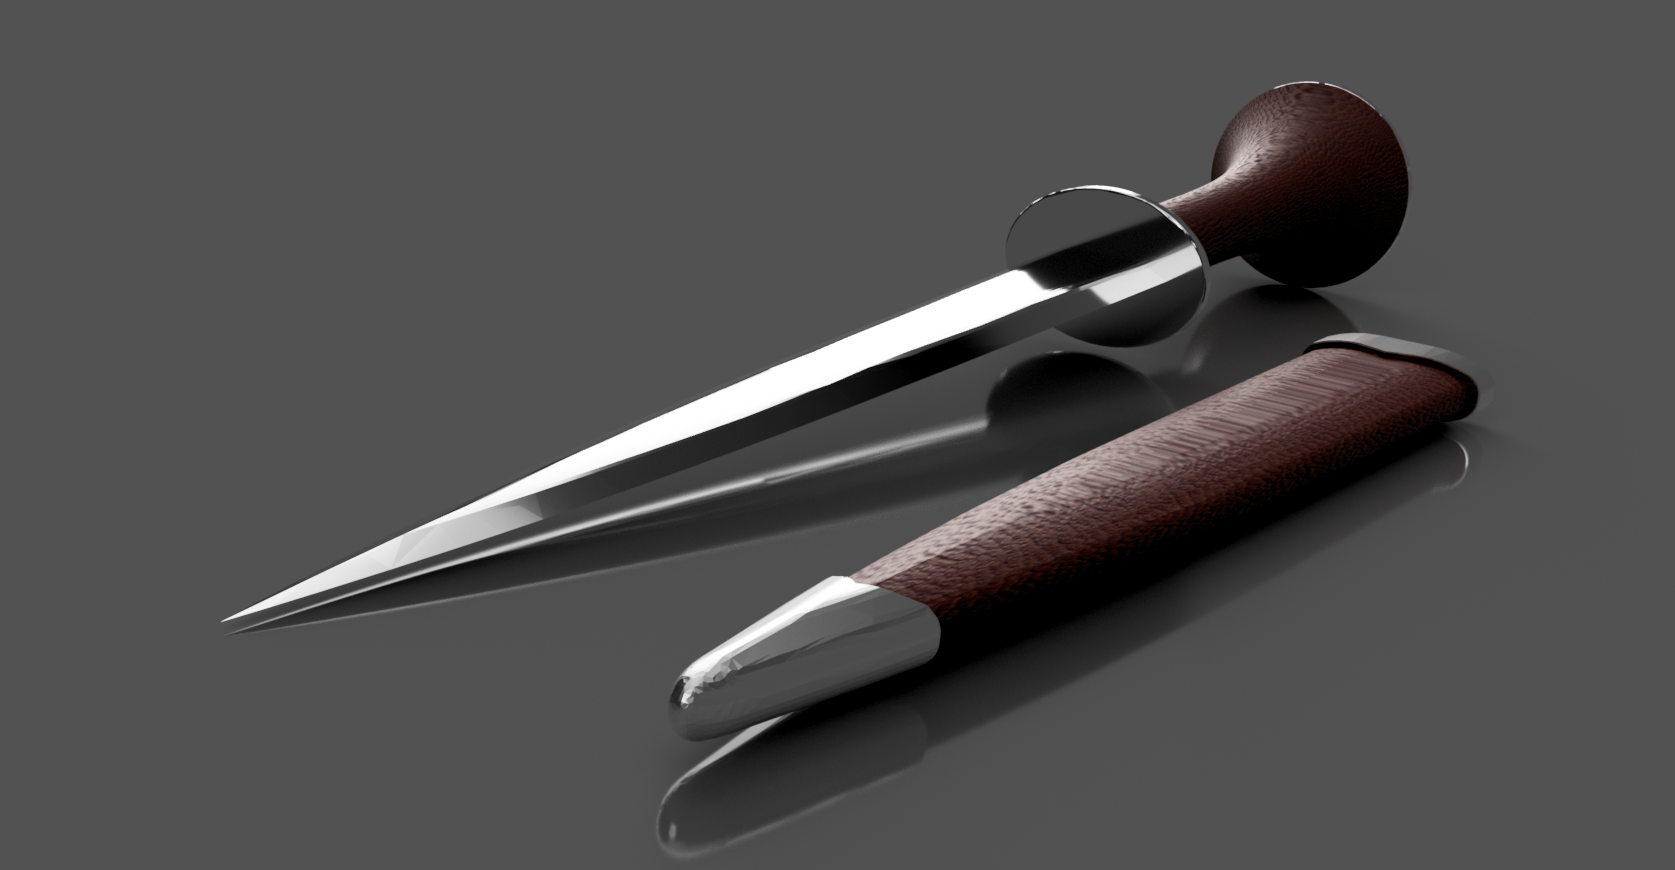 Ciri's Dagger_08.png Download free STL file Ciri's Dagger (Print without support) • 3D print template, Seabird